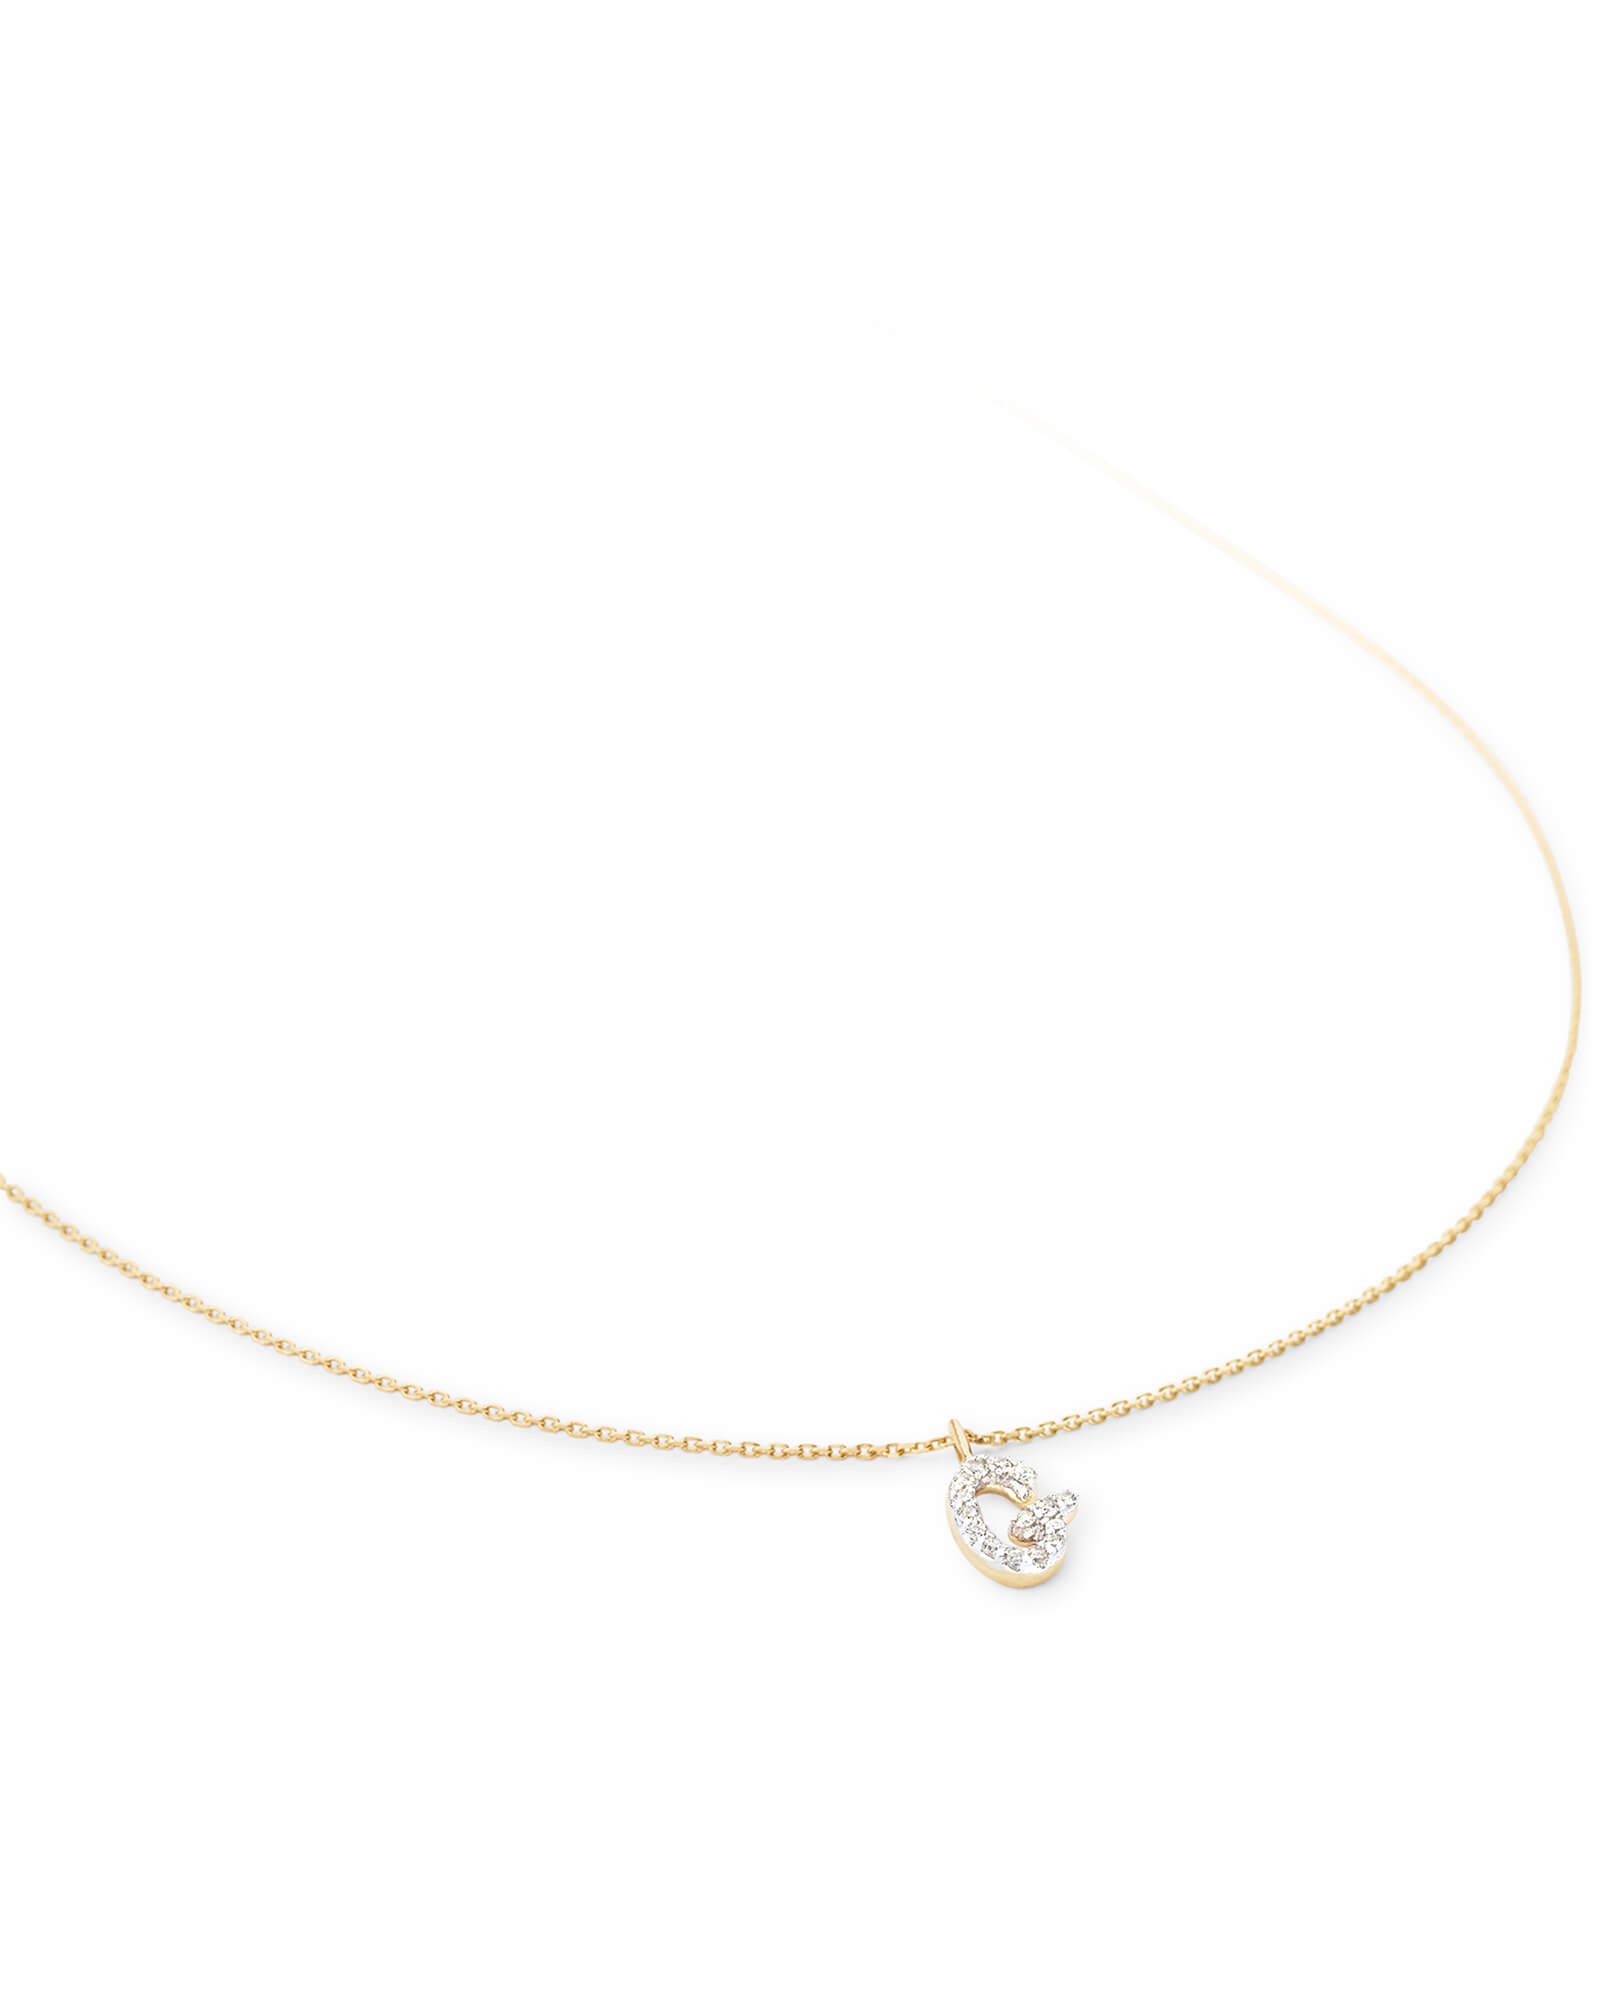 Diamond Letter G Pendant Necklace in 14K Yellow Gold